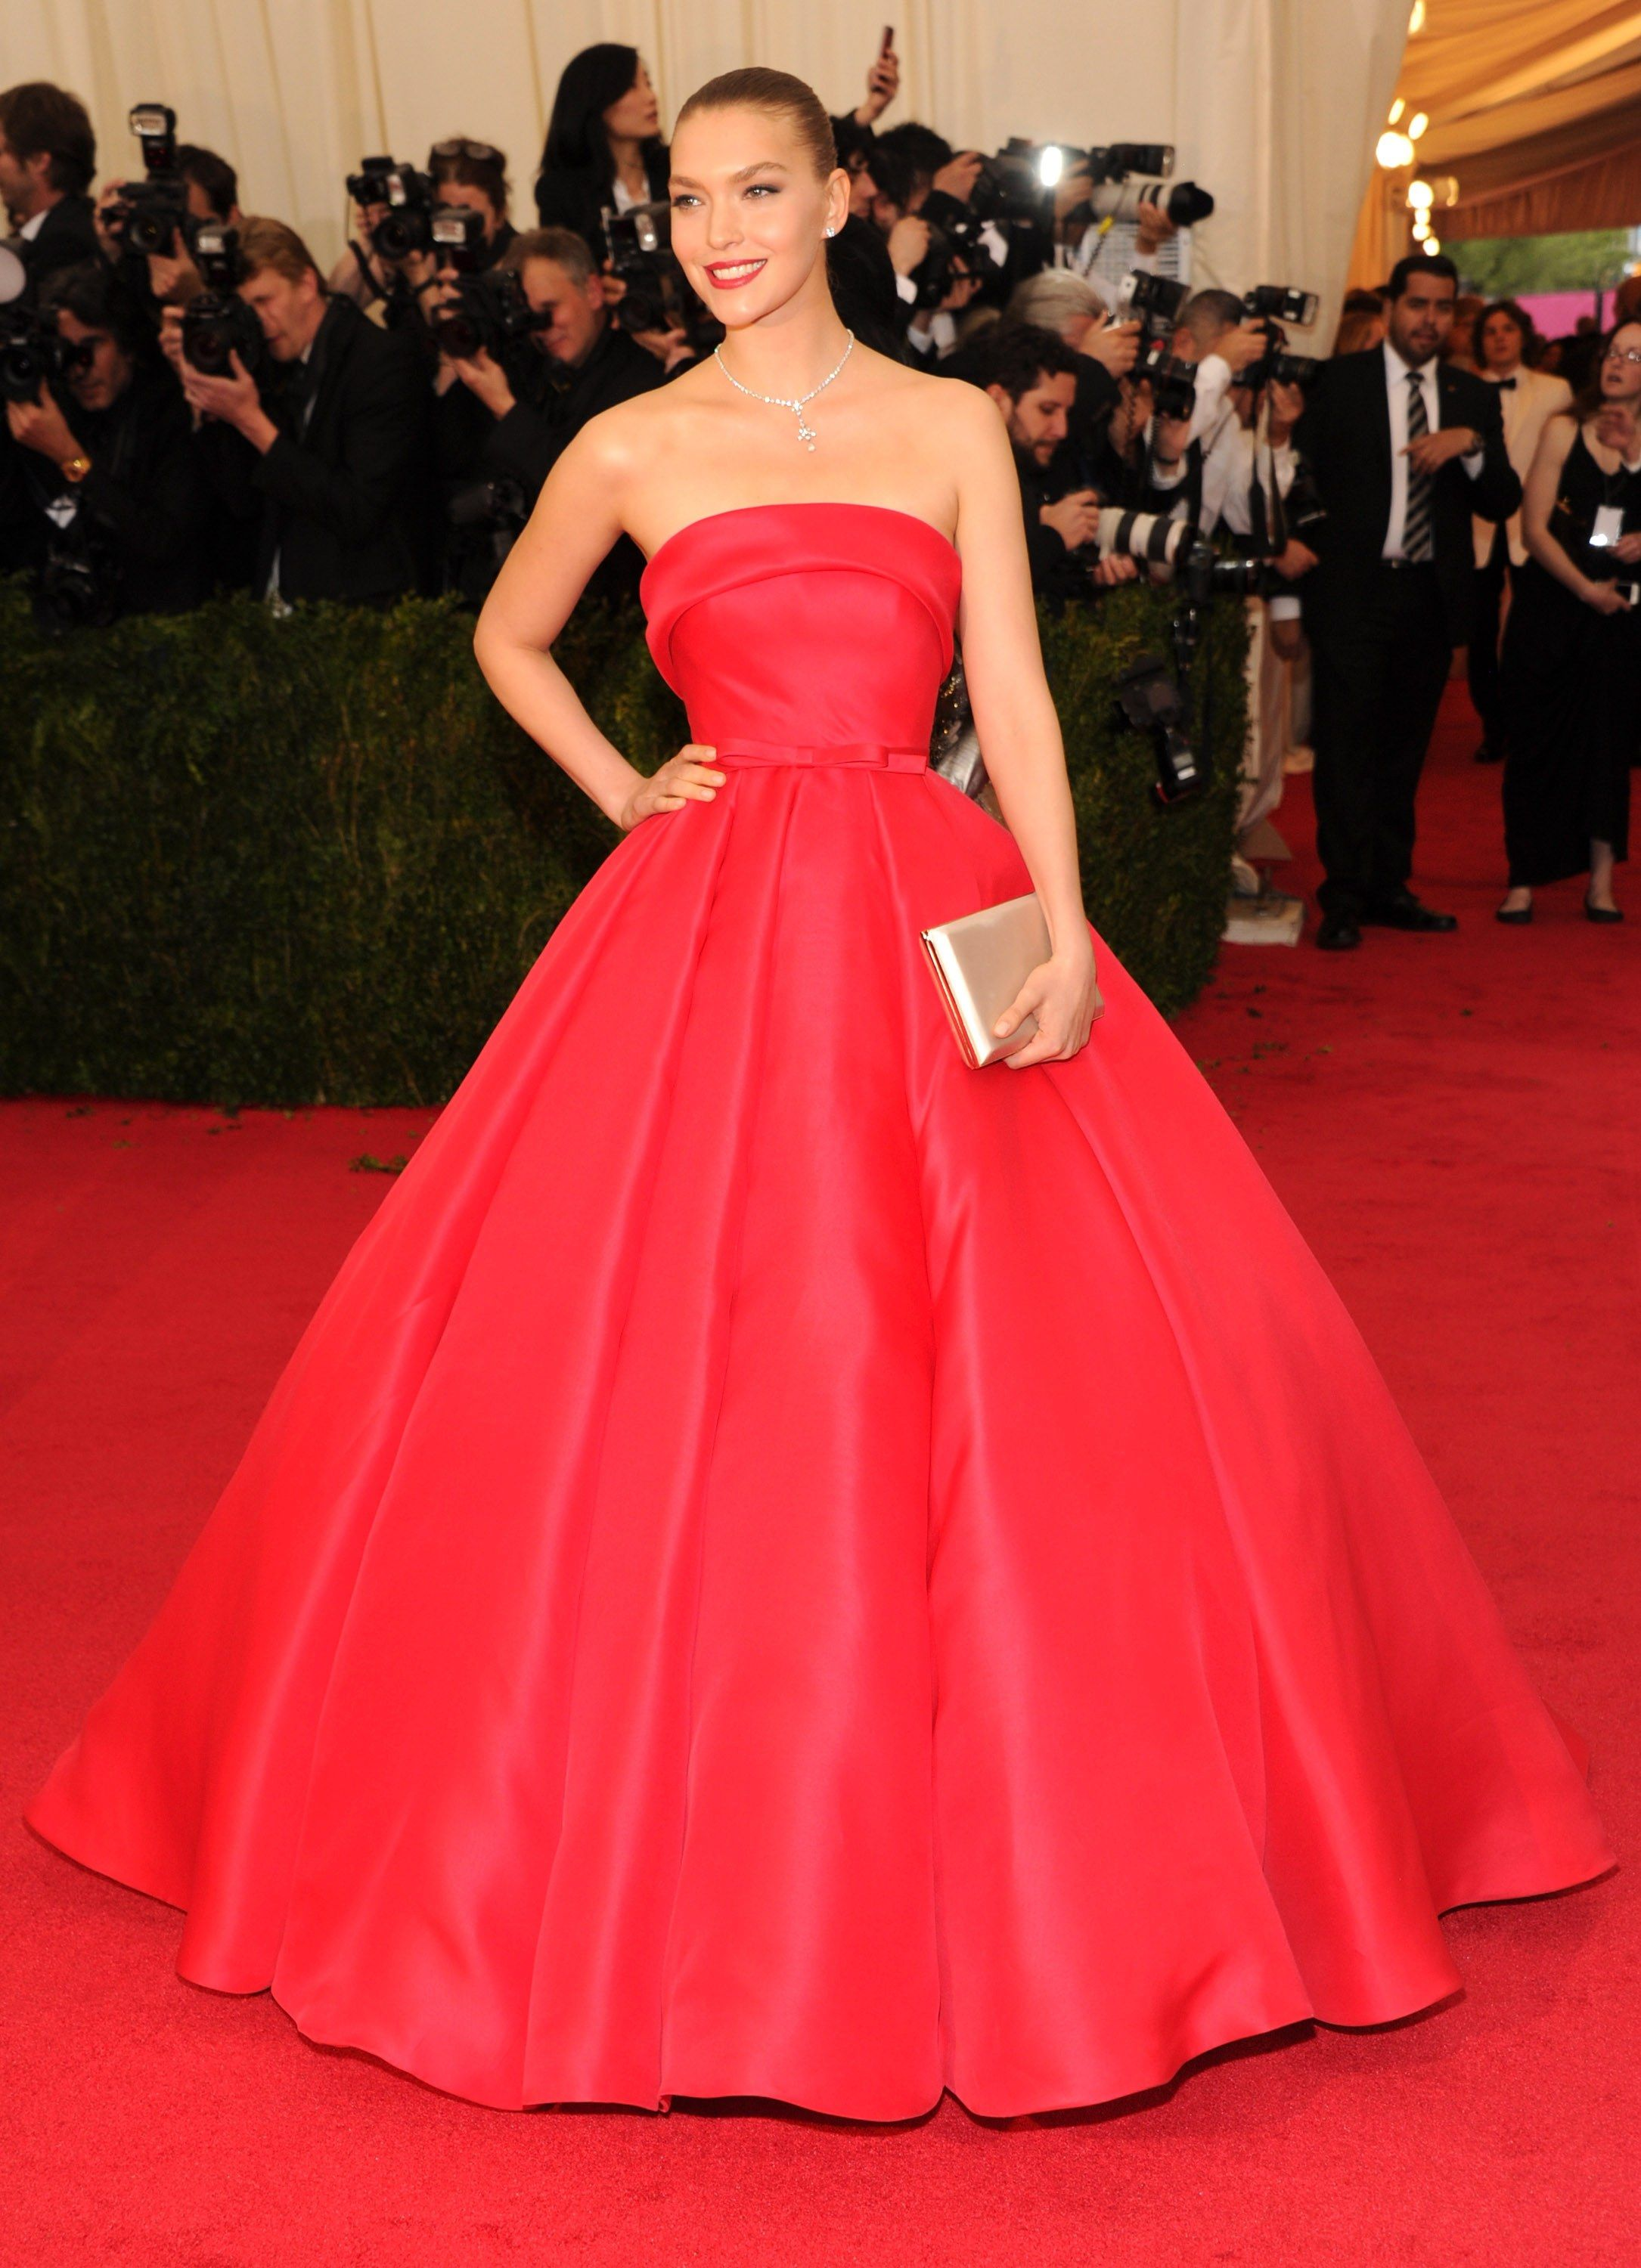 The Most Memorable Met Gala Dresses of All Time | Gala dresses ...